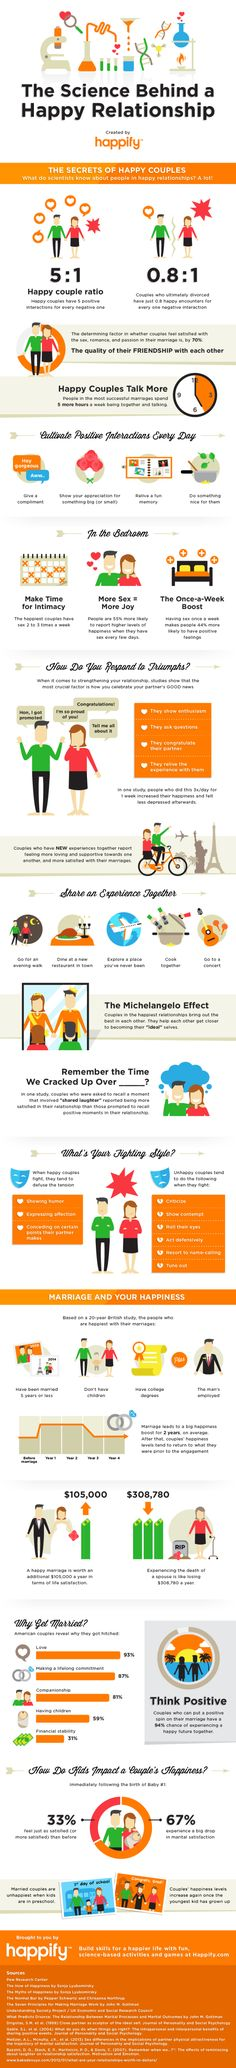 Infographic - Secrets of the happiest couples